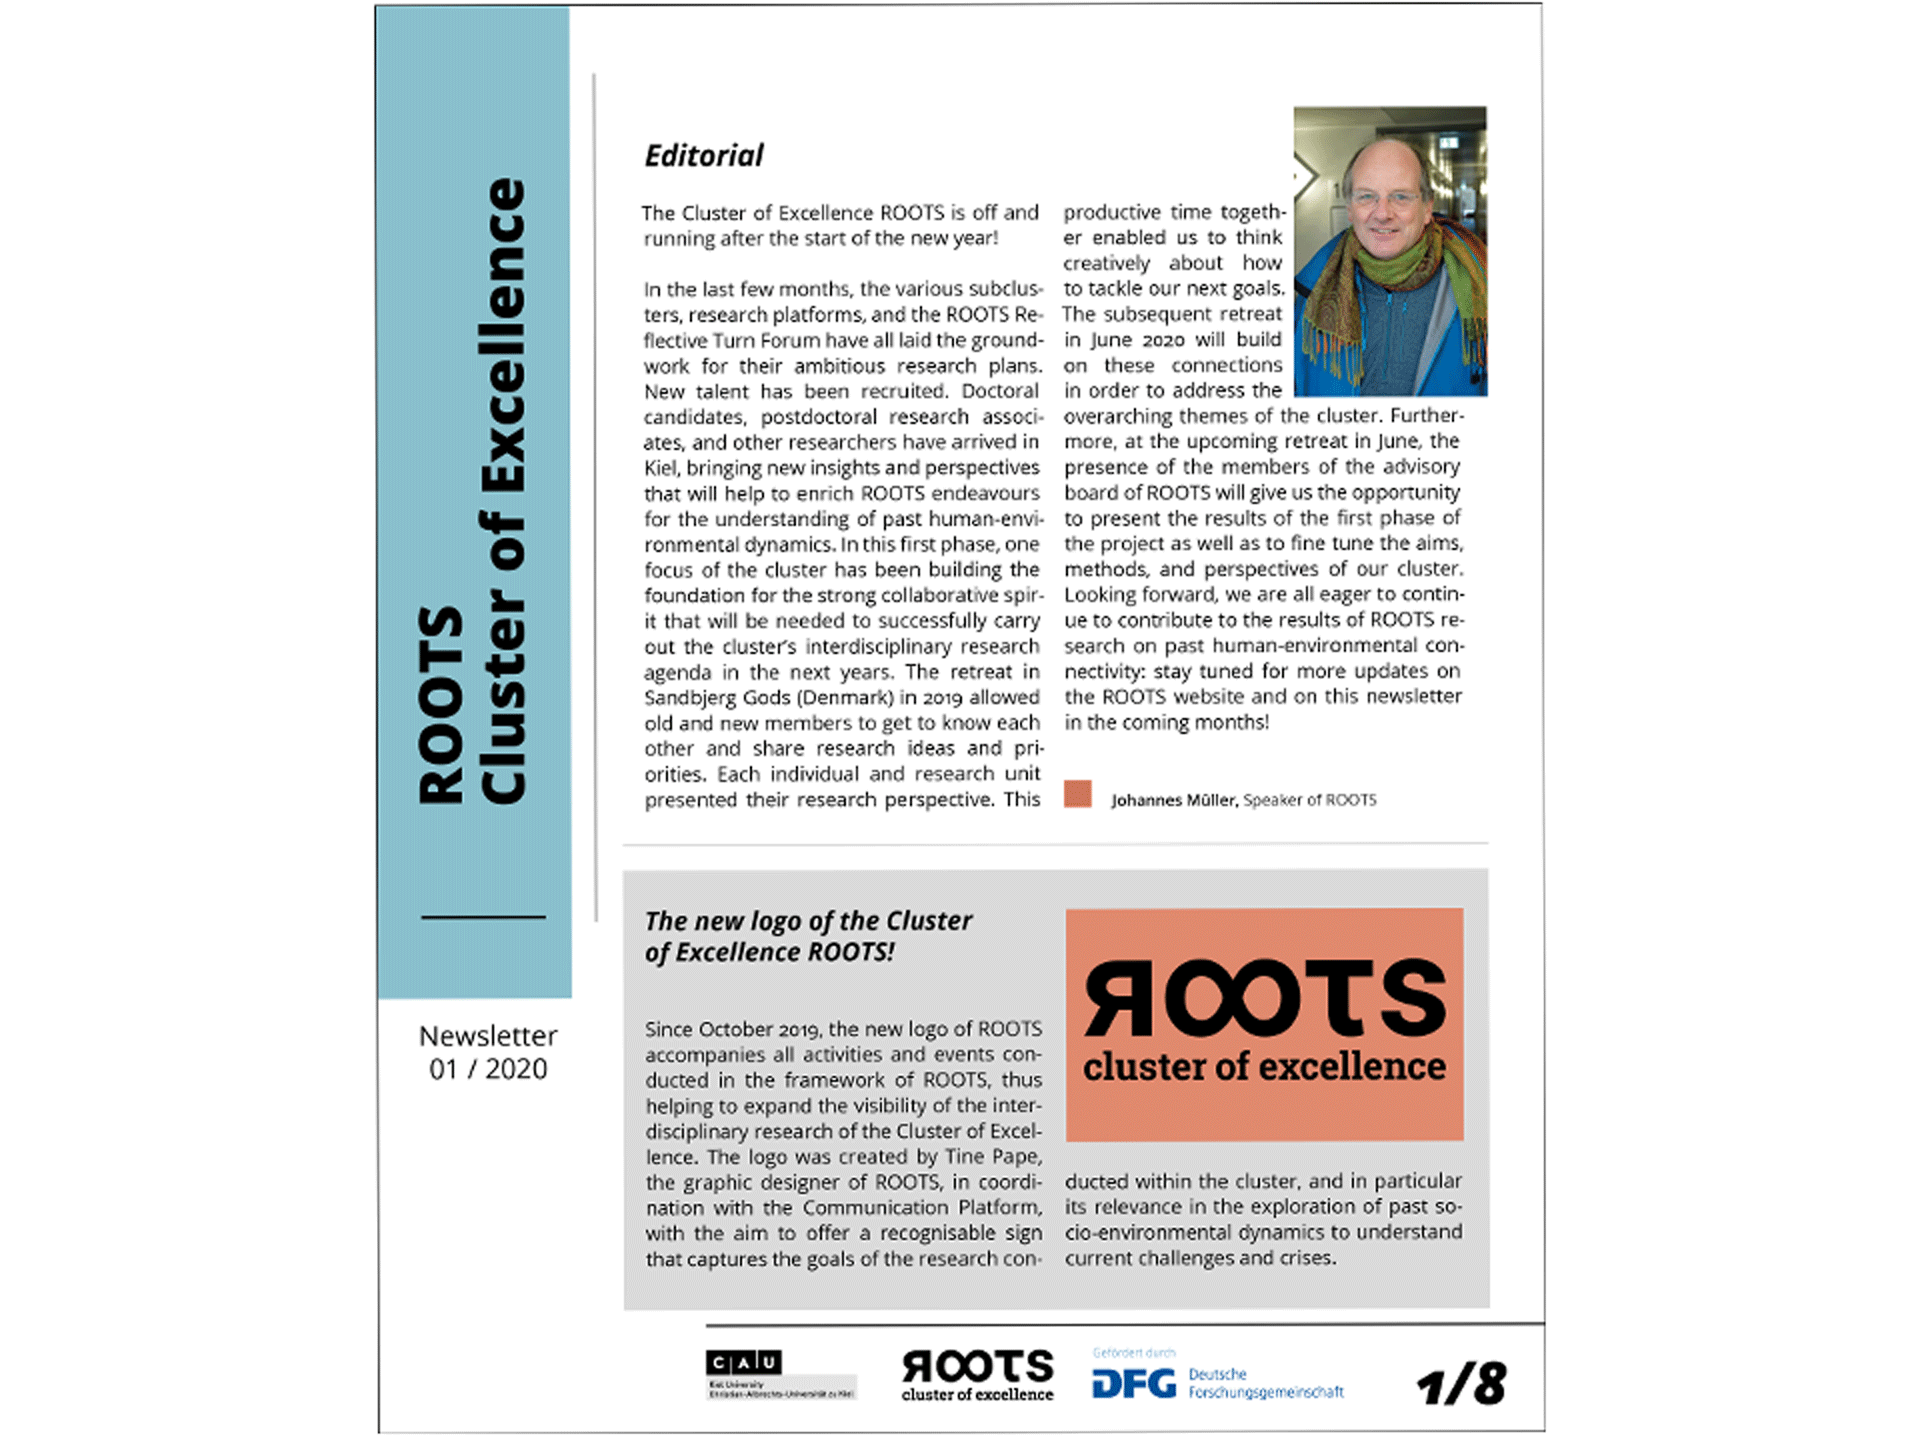 ROOTS Newsletter 01/2020